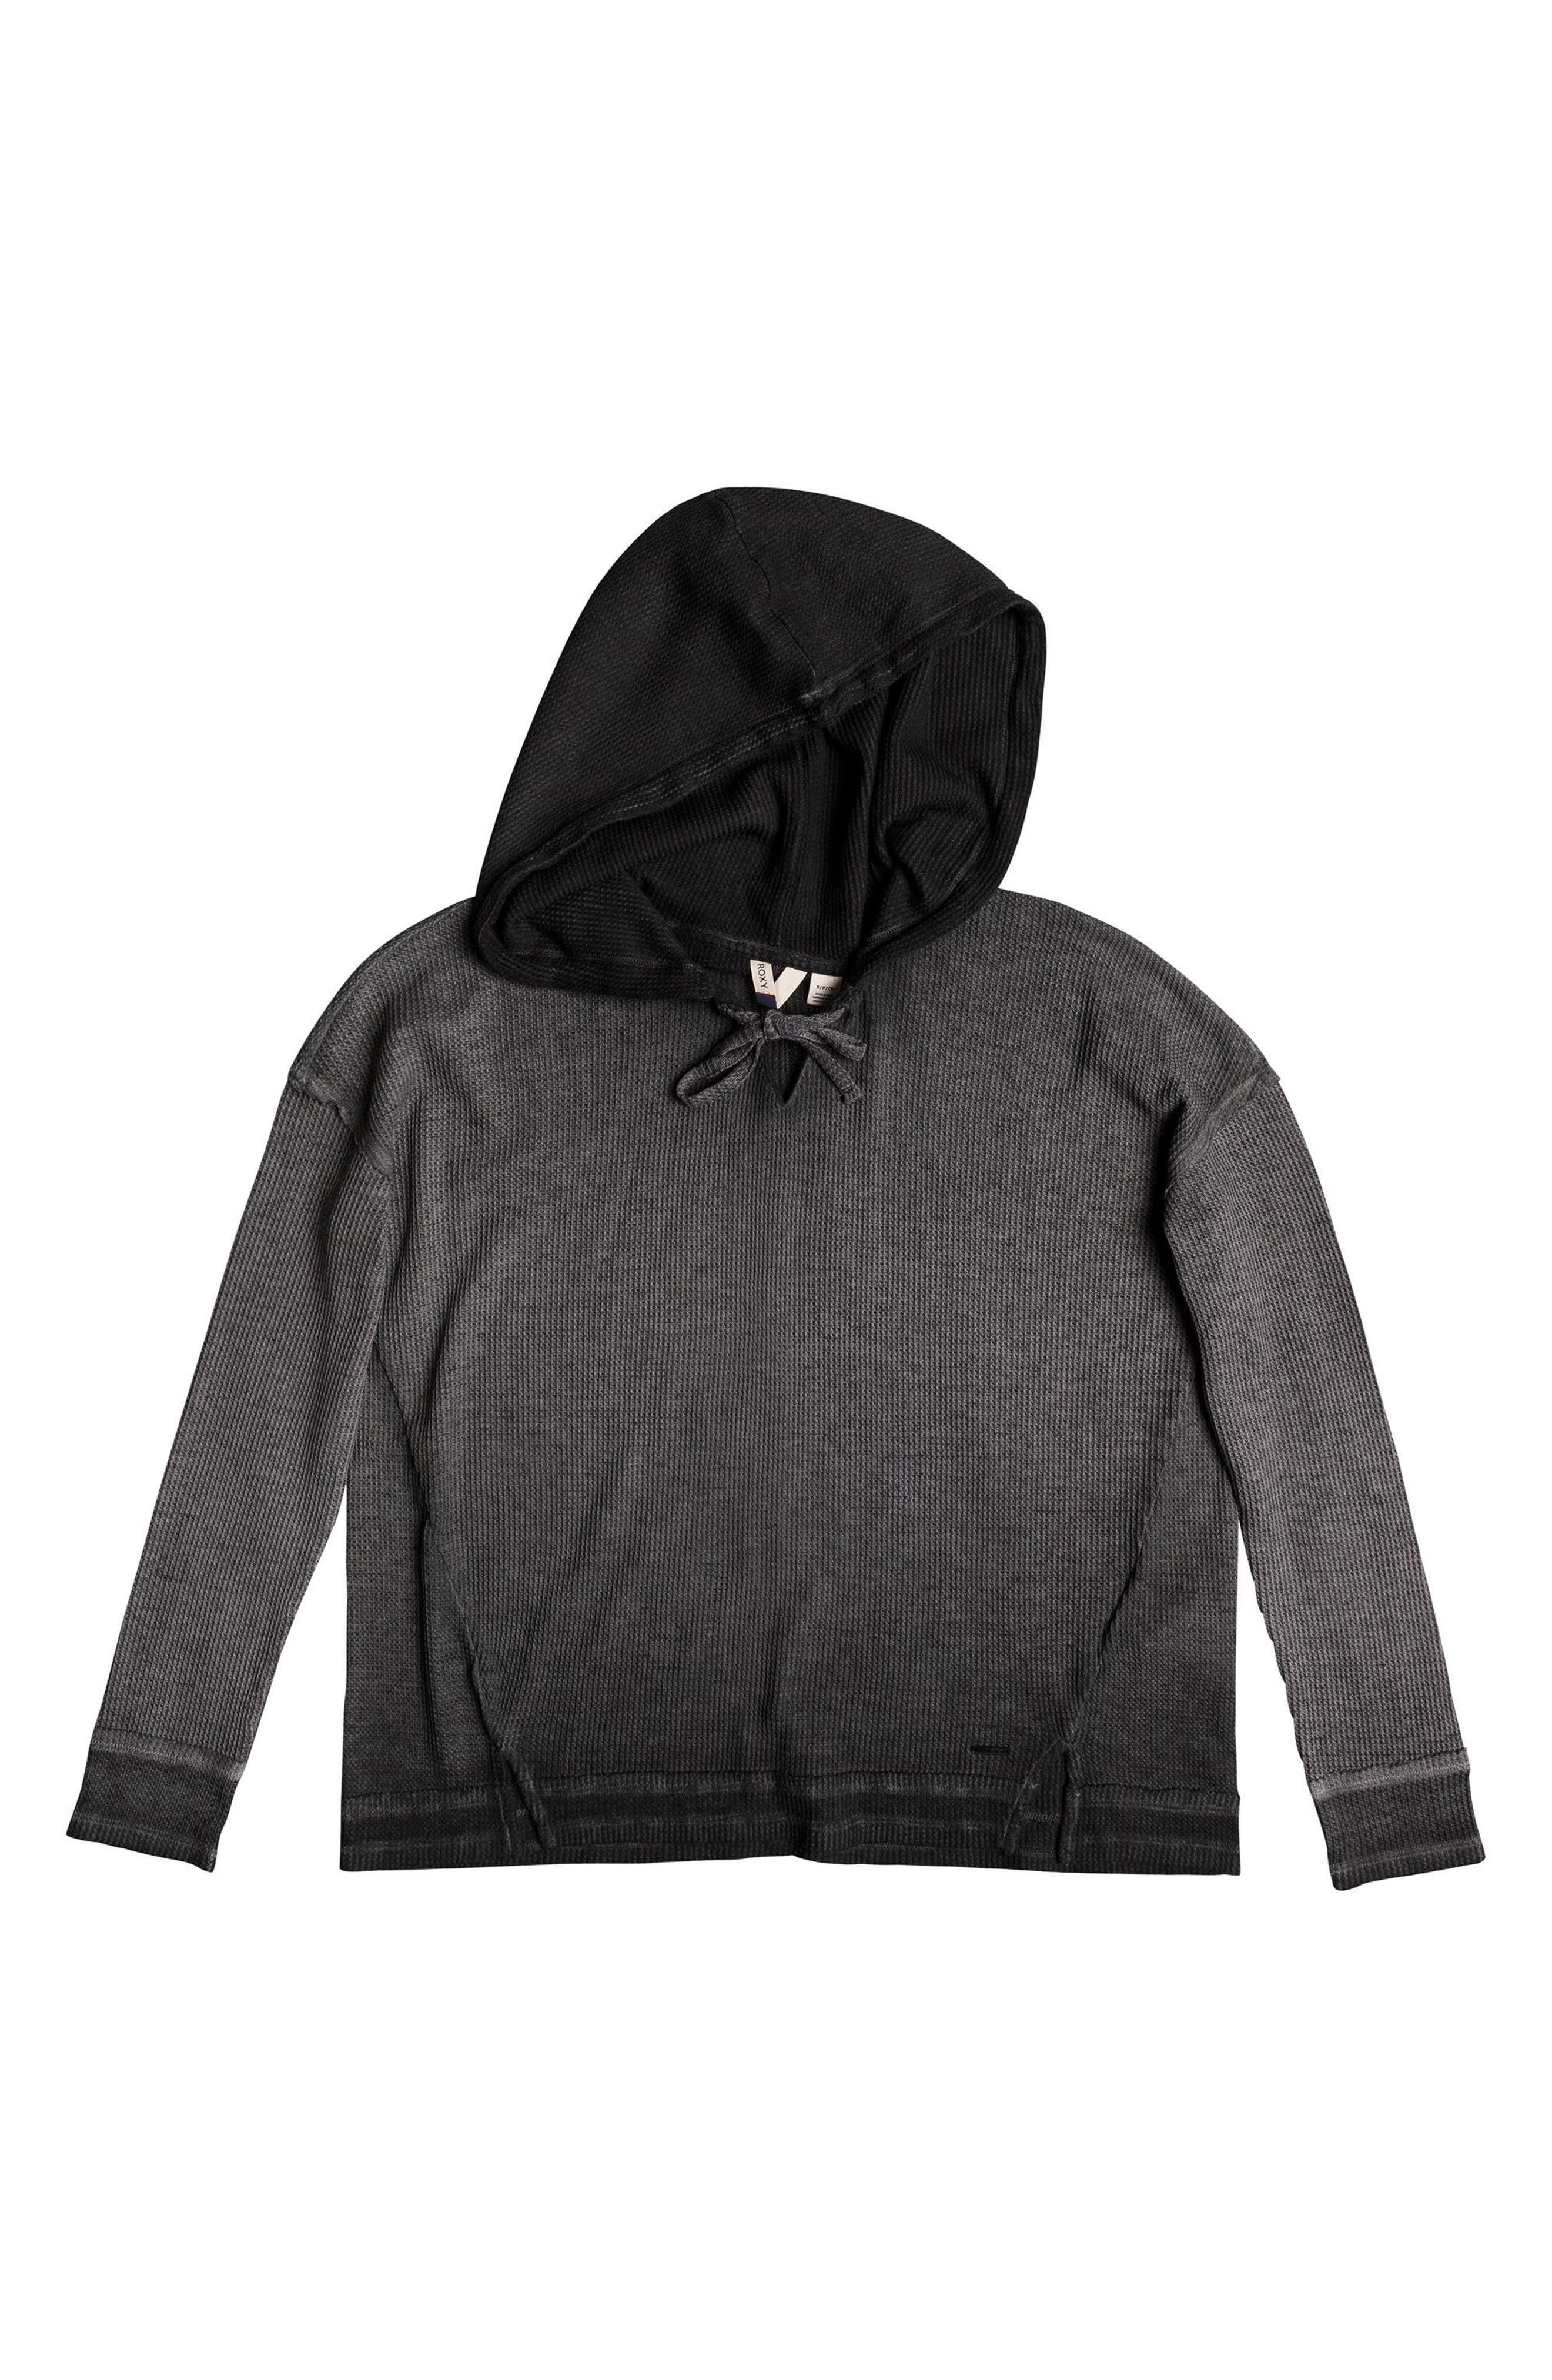 Wanted and Wild Hooded Thermal Top,                             Alternate thumbnail 5, color,                             Anthracite